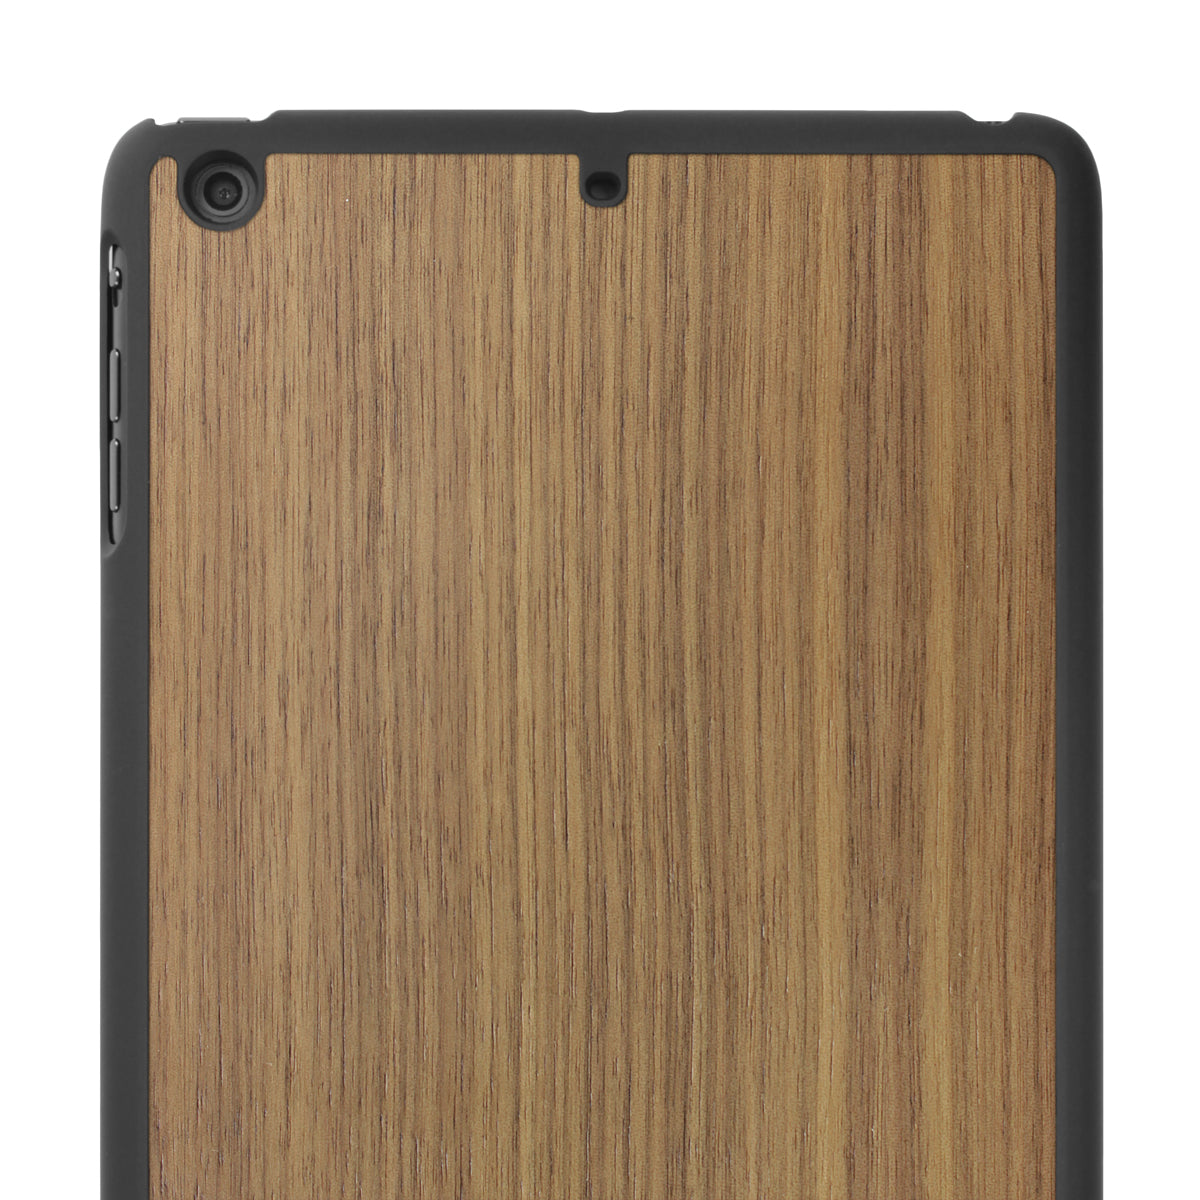 Walnut Wood Ipad Mini 2 3 Case Wooden Cases Cover Up